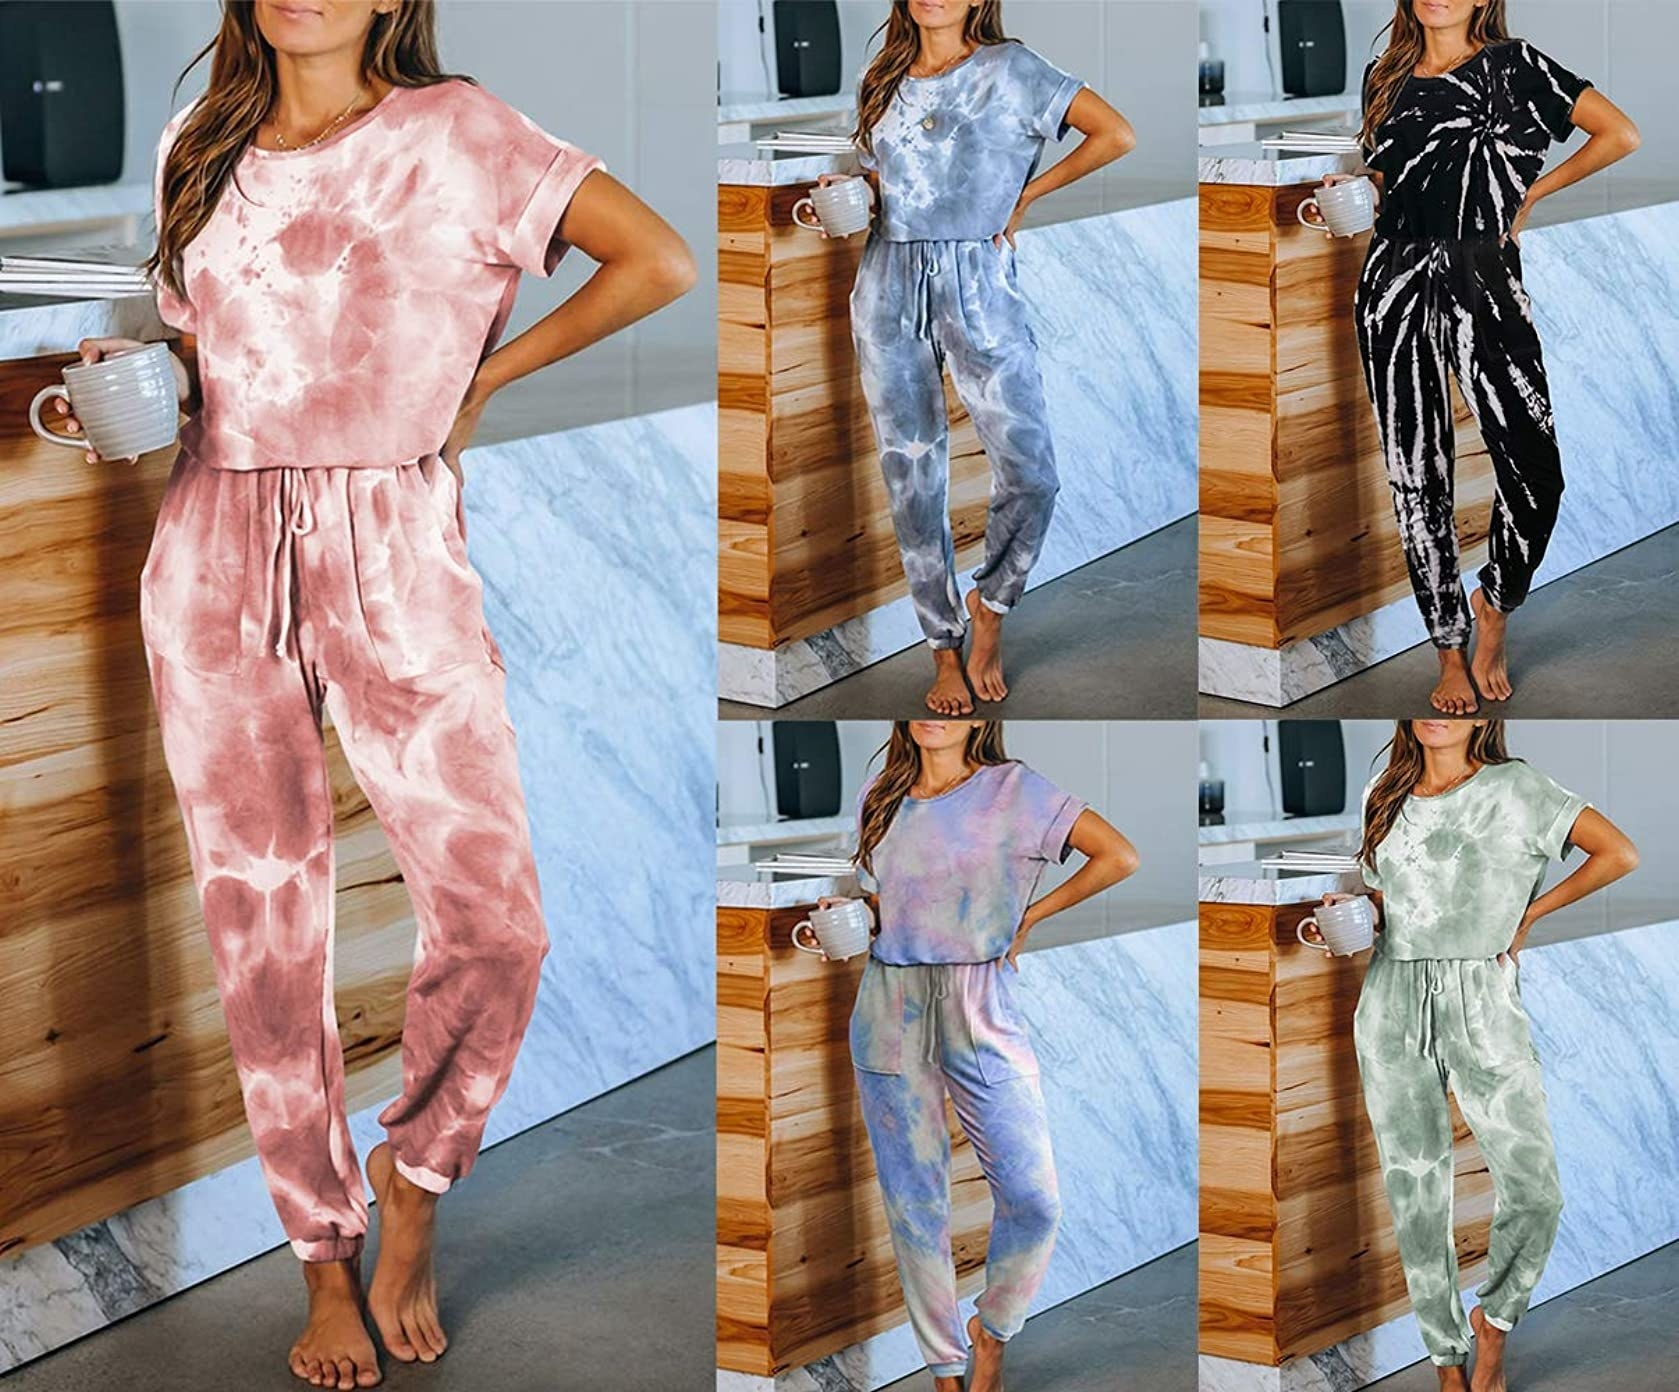 The tie-dye sweatsuits in multiple colors